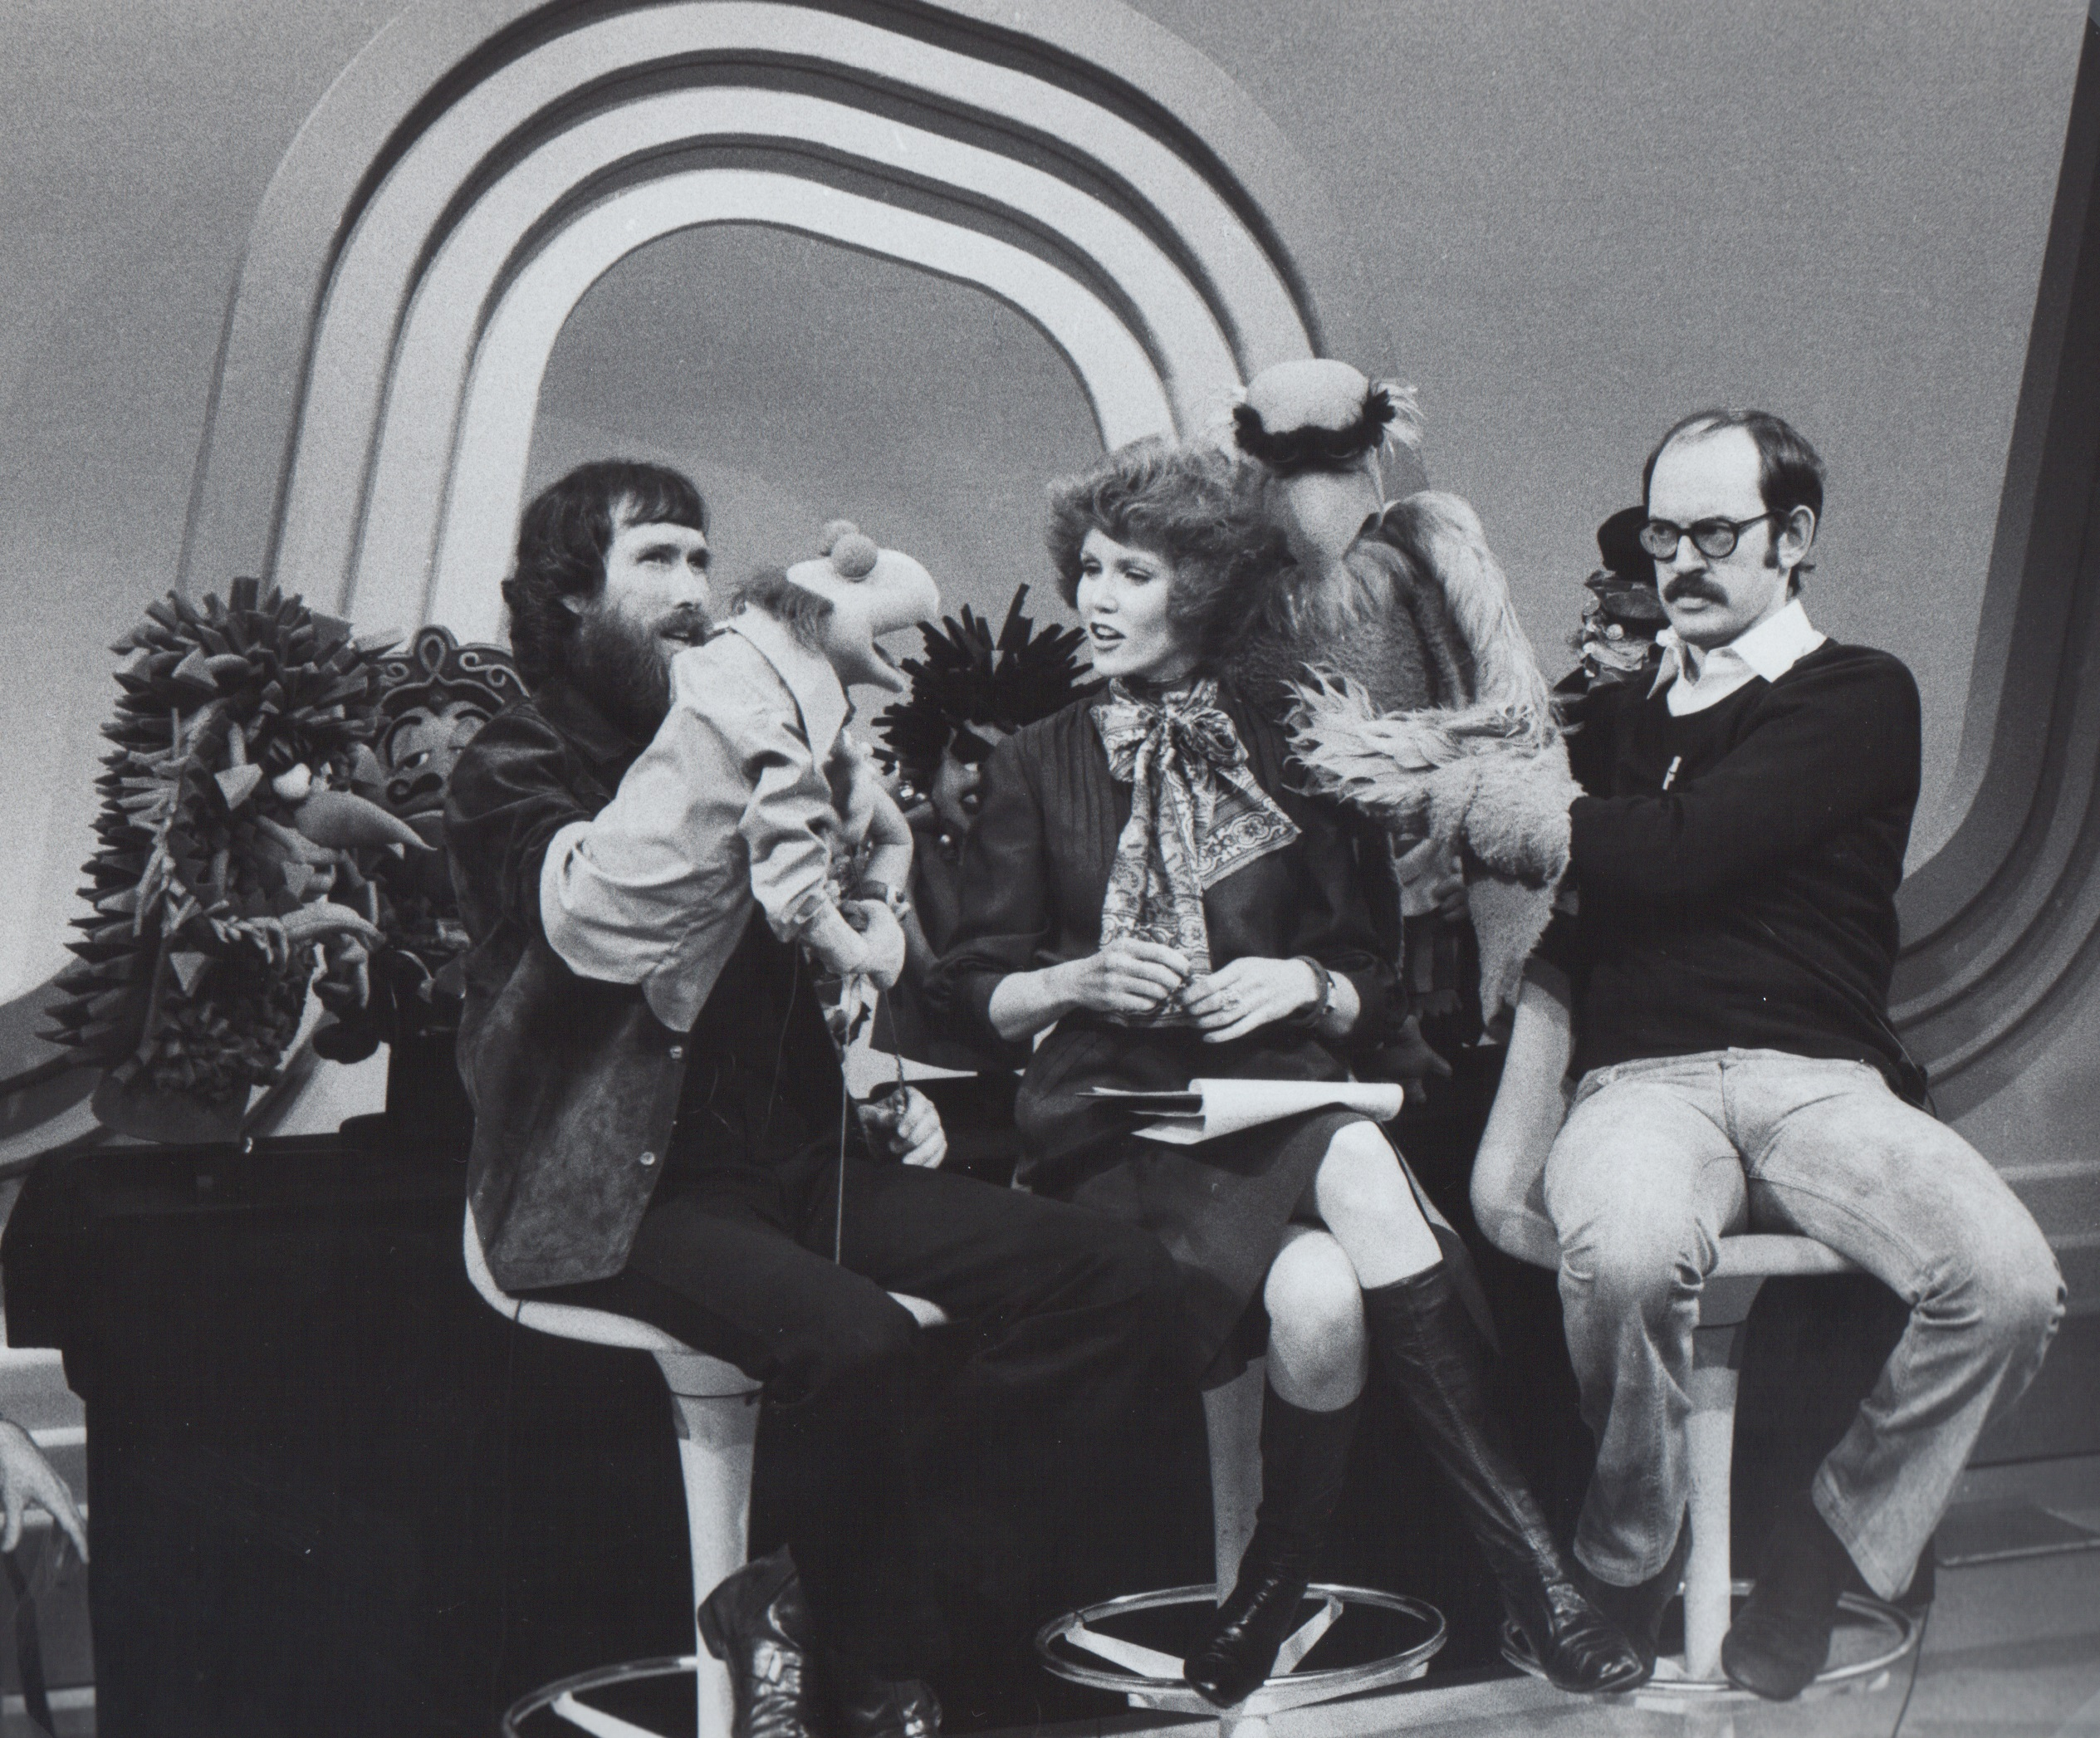 Jim Hensen, Stephanie, Frank Oz & Muppets, ABC TV 1975